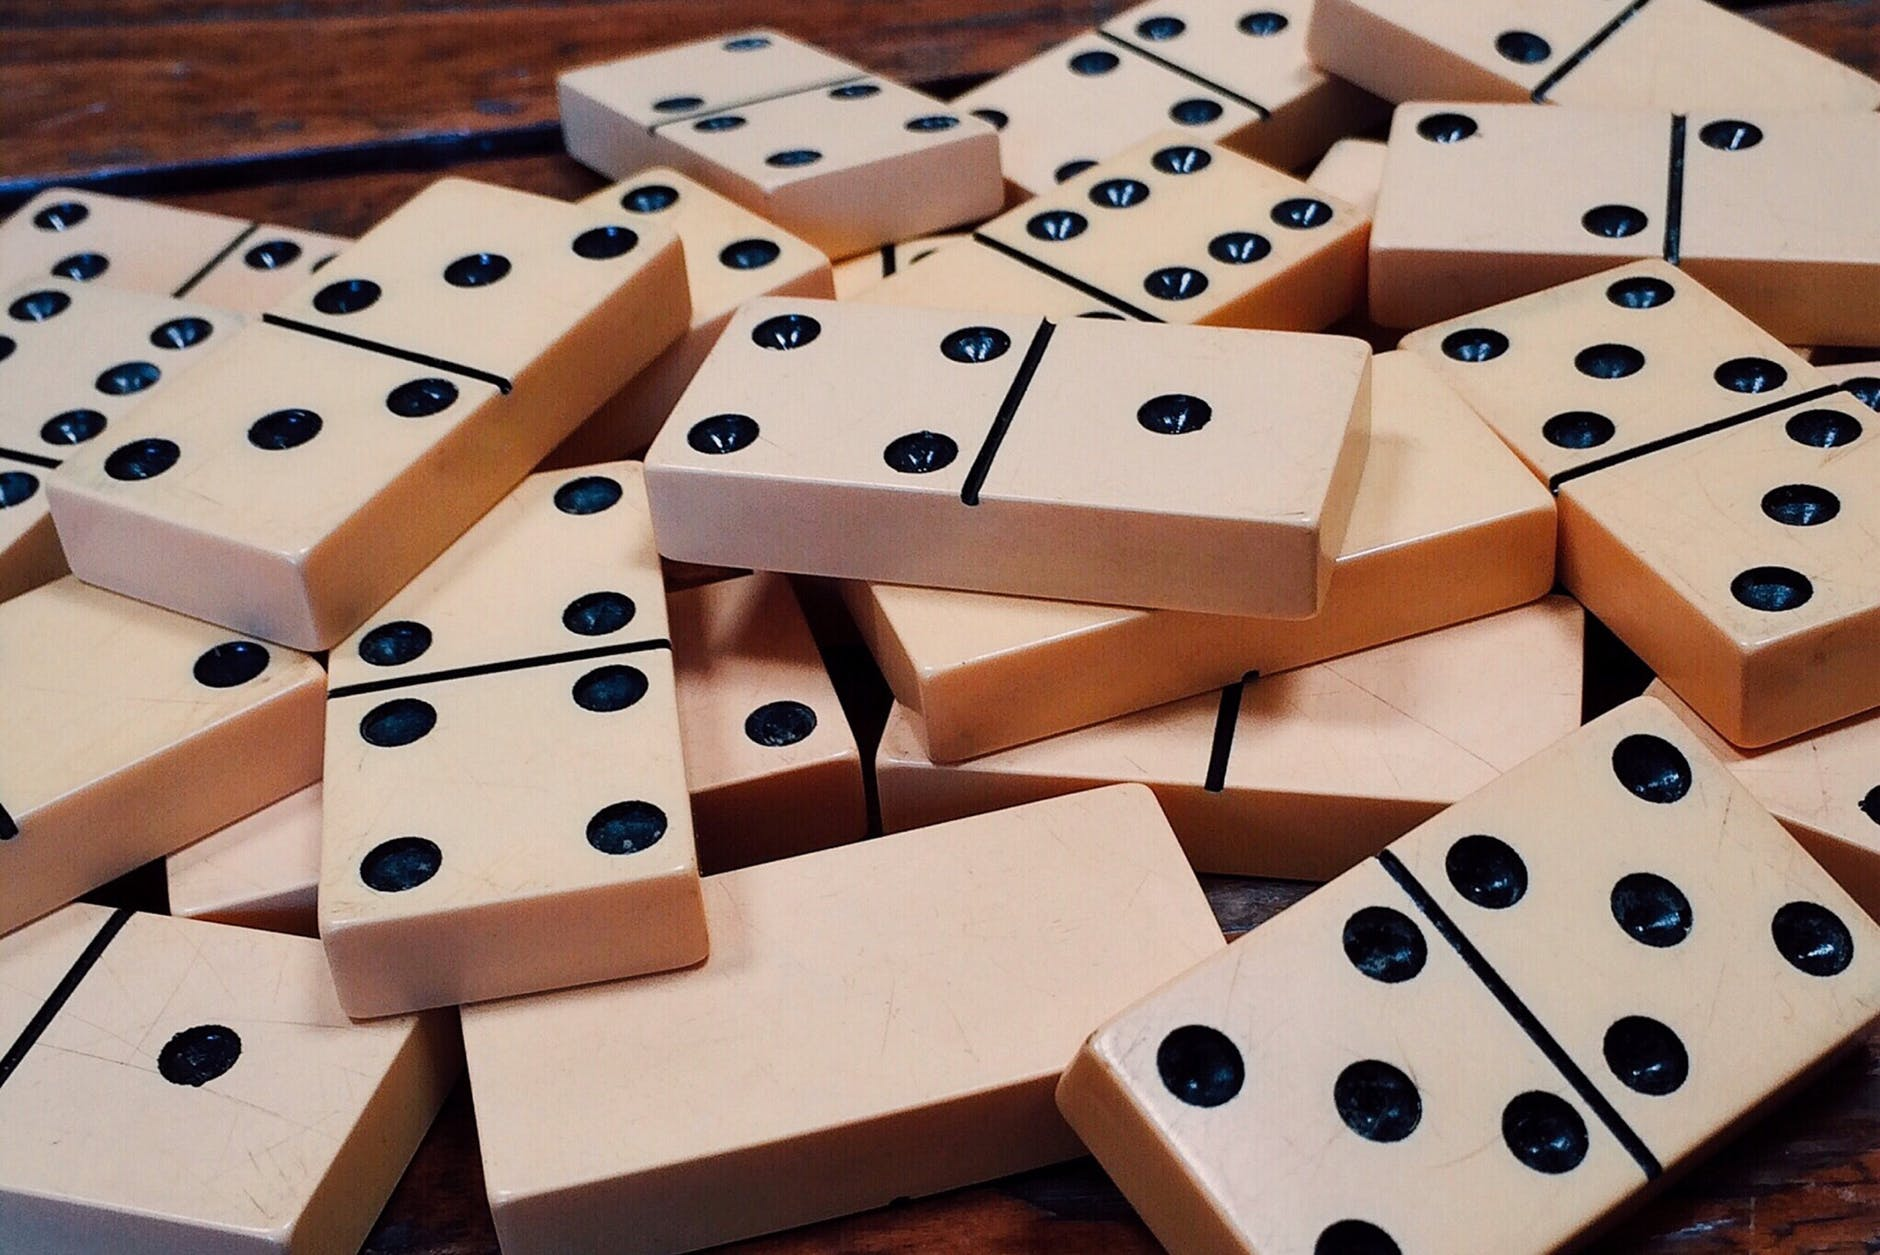 The domino effect: How one injury can trigger another